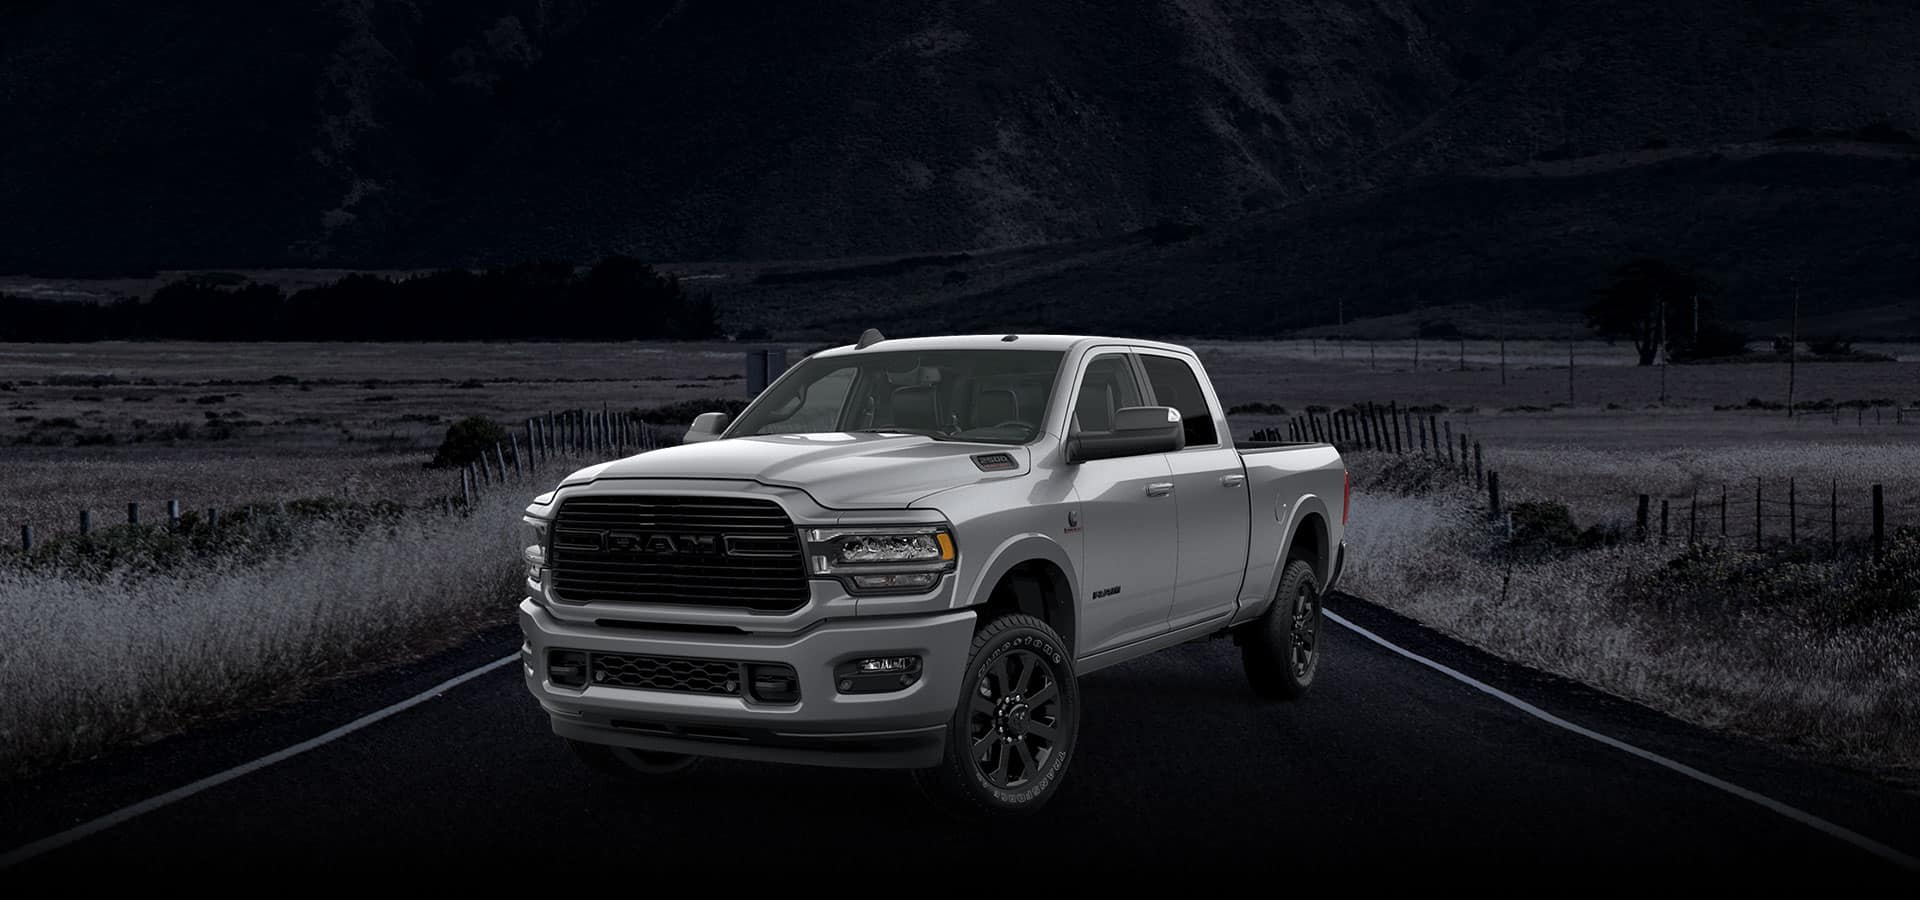 A 2019 Ram 2500 Night Edition on a road at night in farmland with the background presented in black and white.